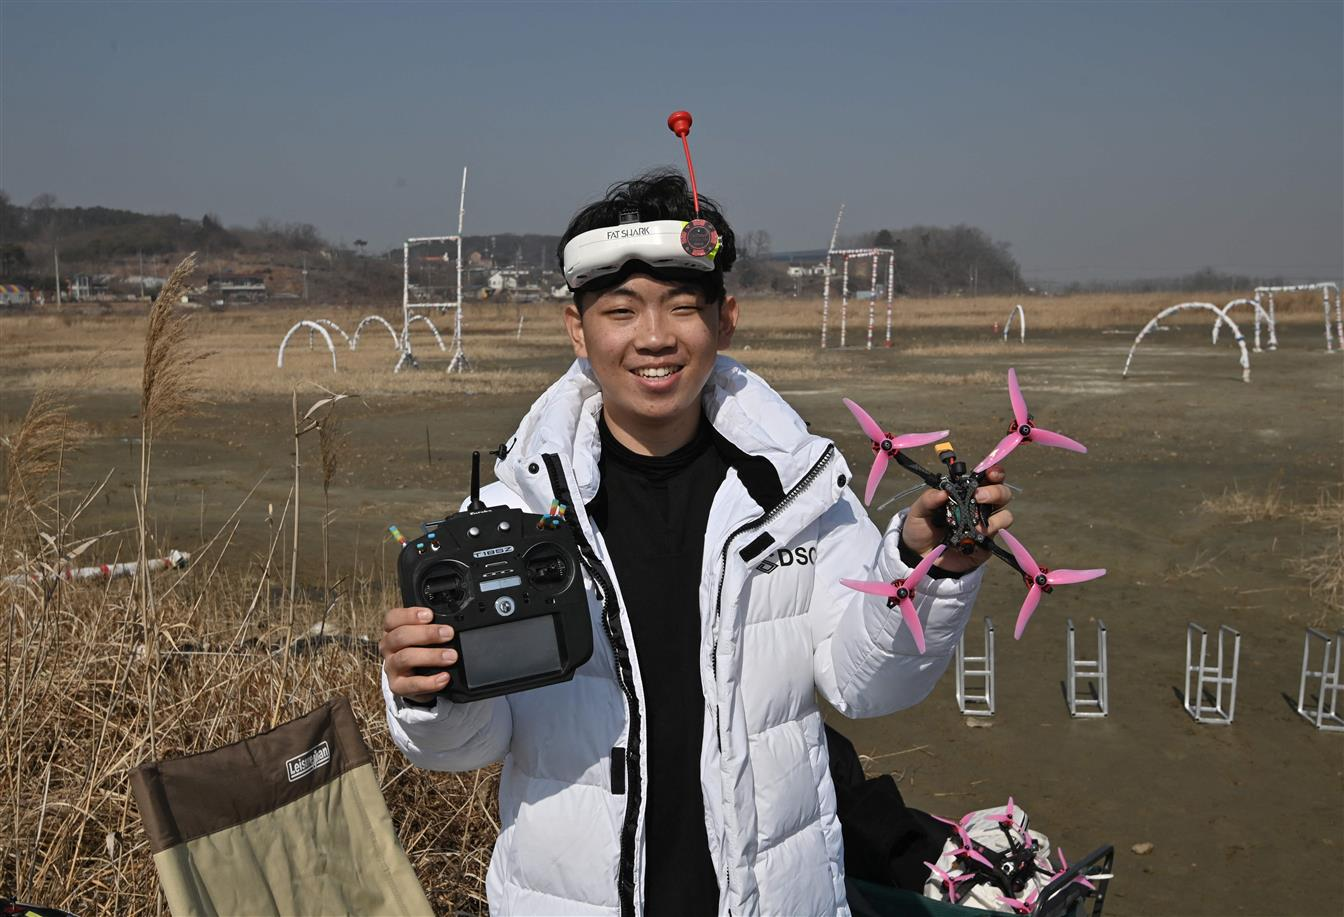 Meet 18-Yr-Old World Drone Champion